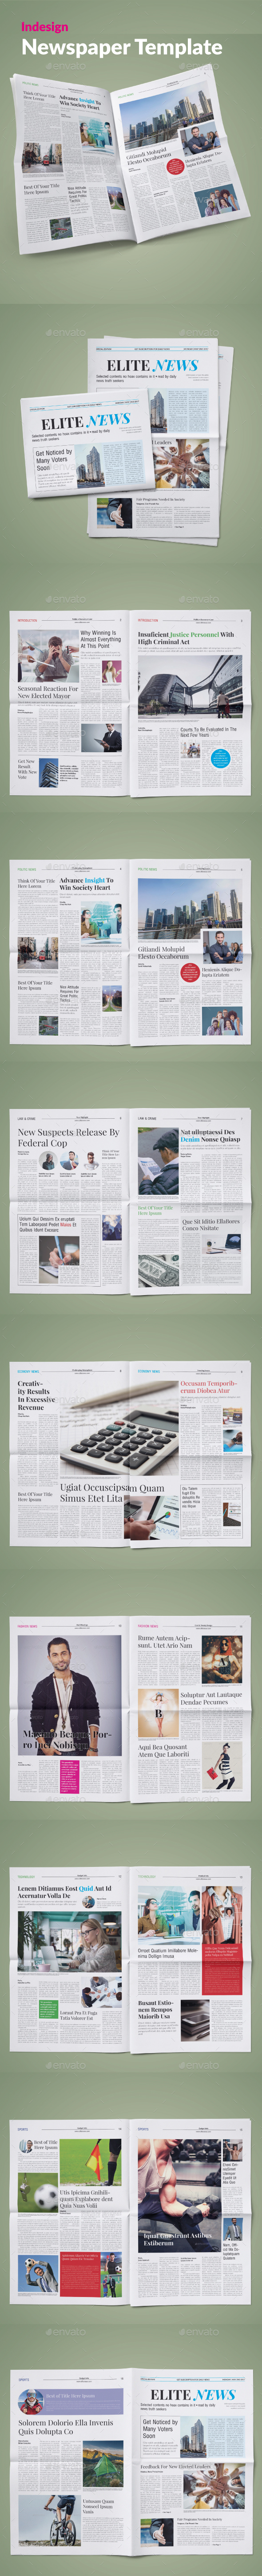 Elite News Newspaper Template - Newsletters Print Templates